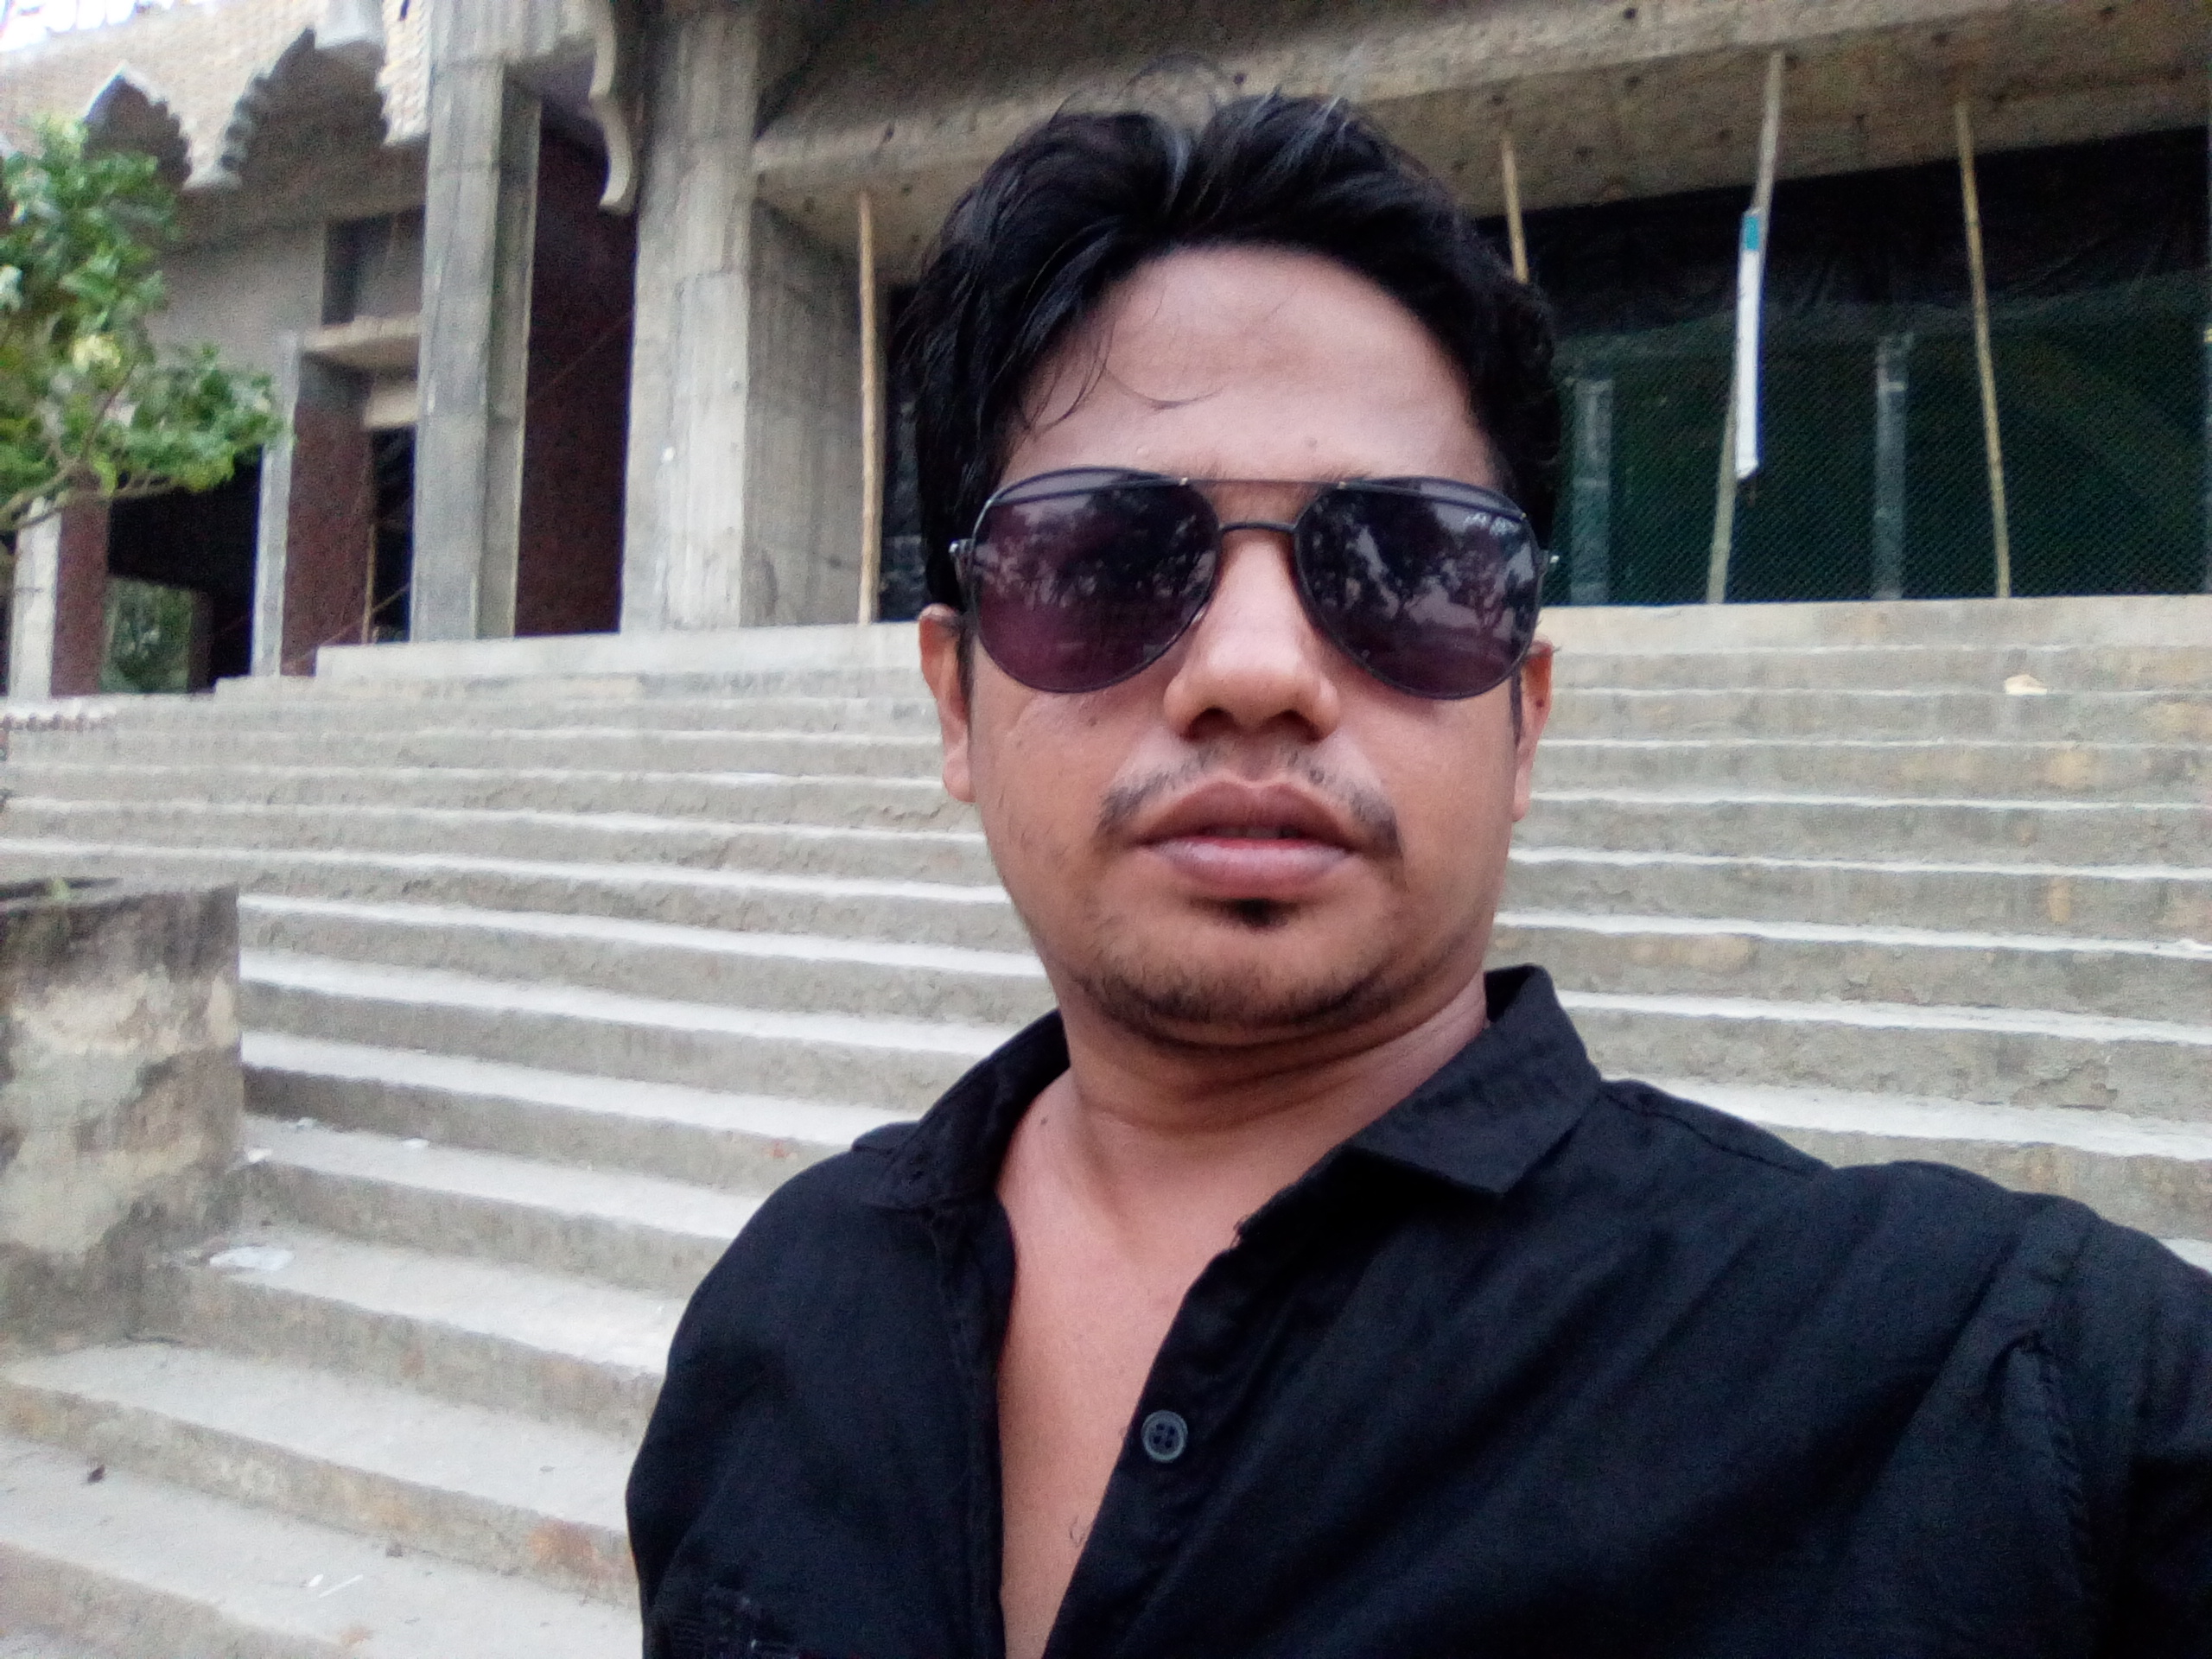 Md. Forhad Hossain Profile Picture